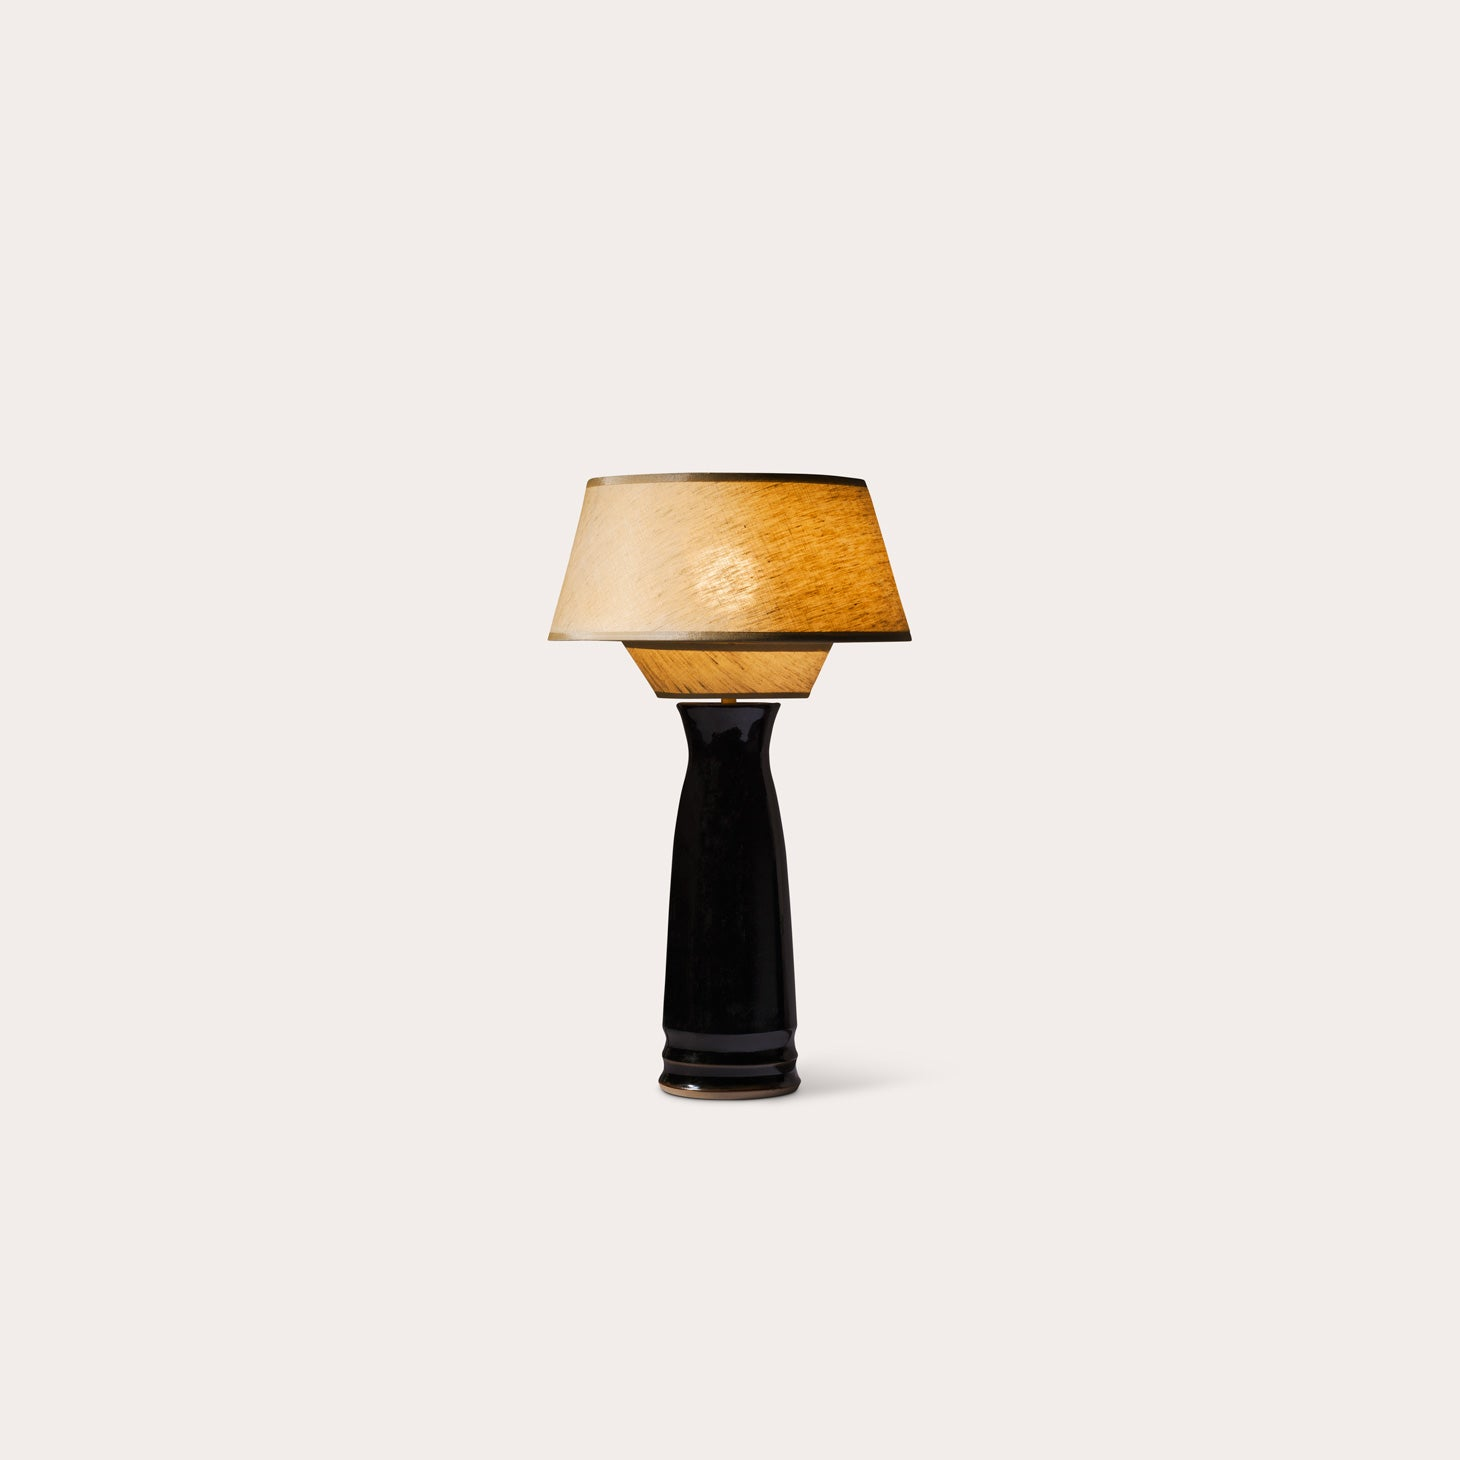 PAMLI PM Lighting Bruno Moinard Designer Furniture Sku: 773-160-10034